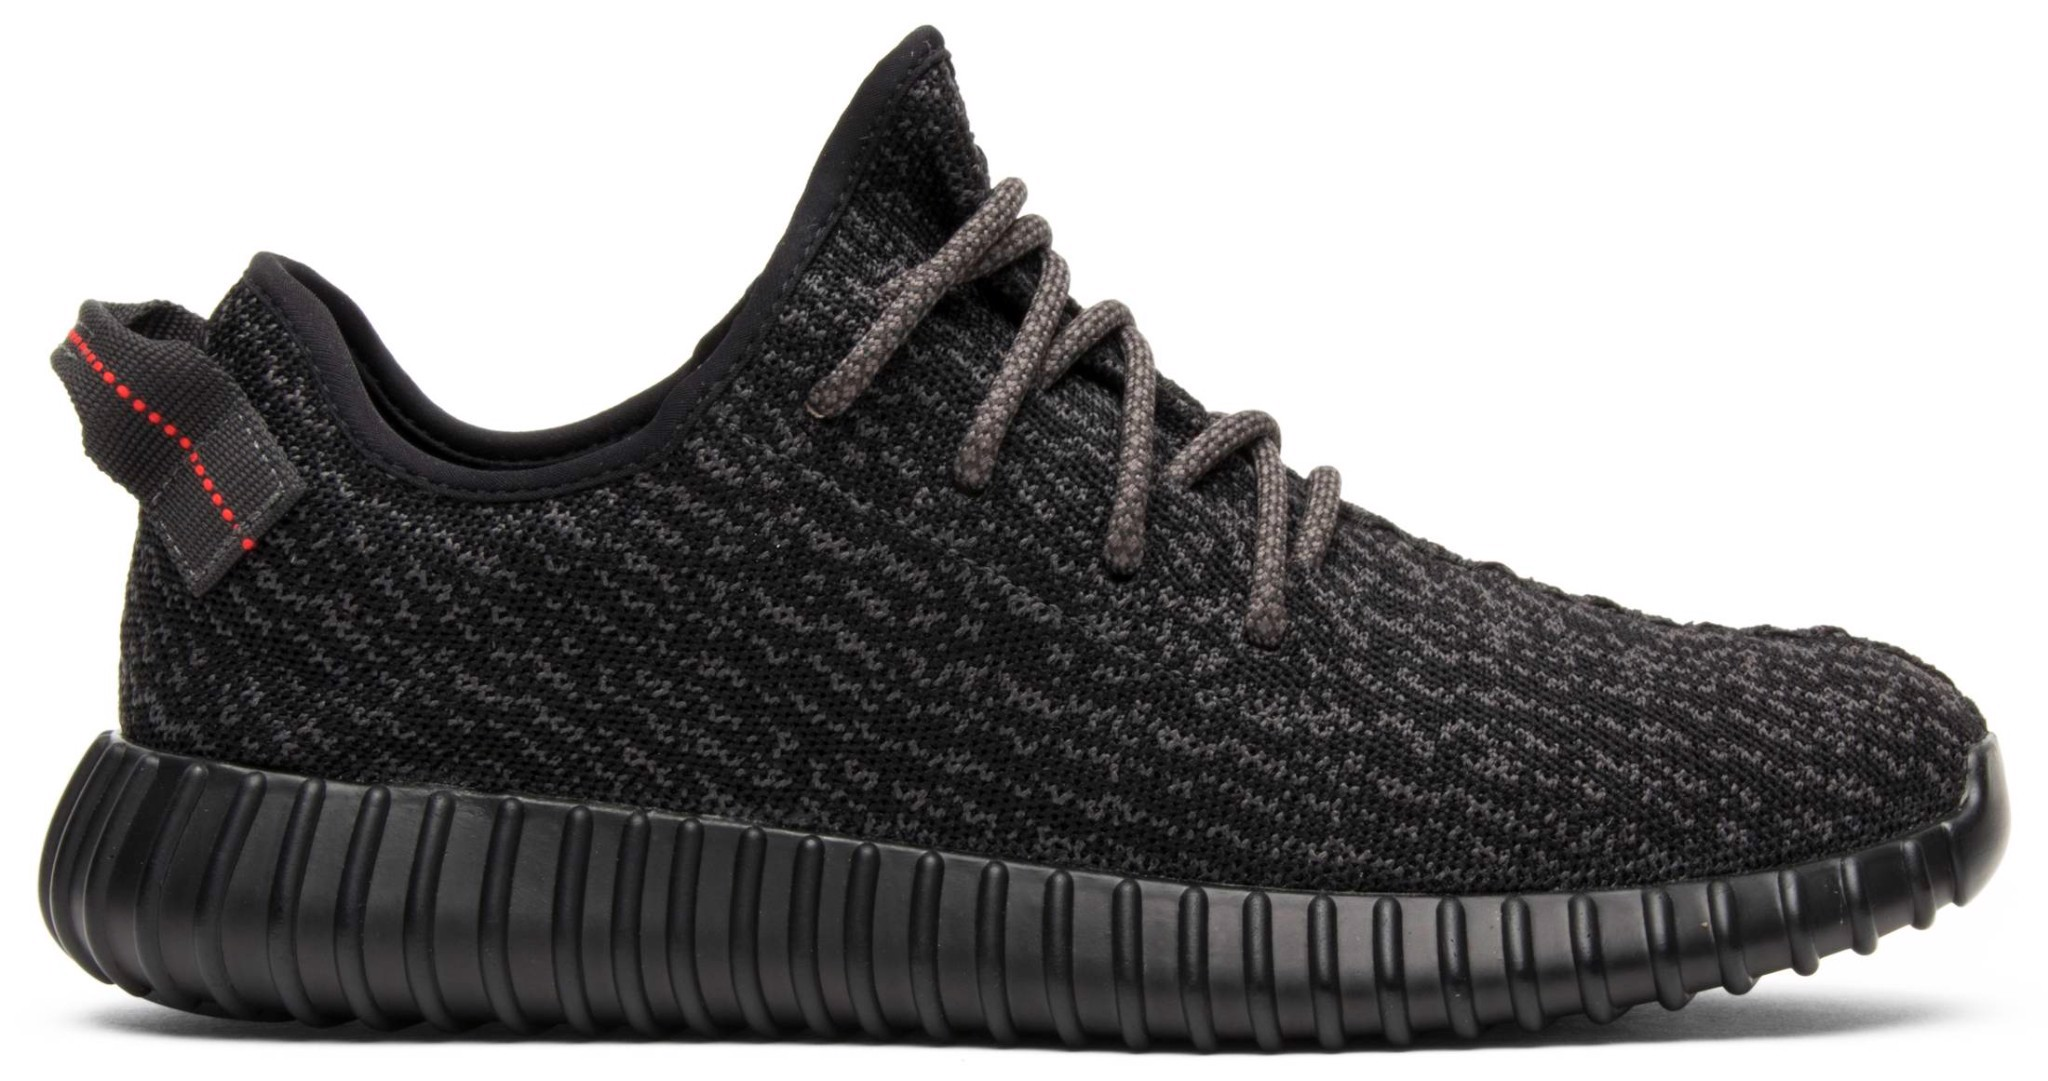 Giày Adidas Yeezy Boost 350 'Pirate Black' BB5350